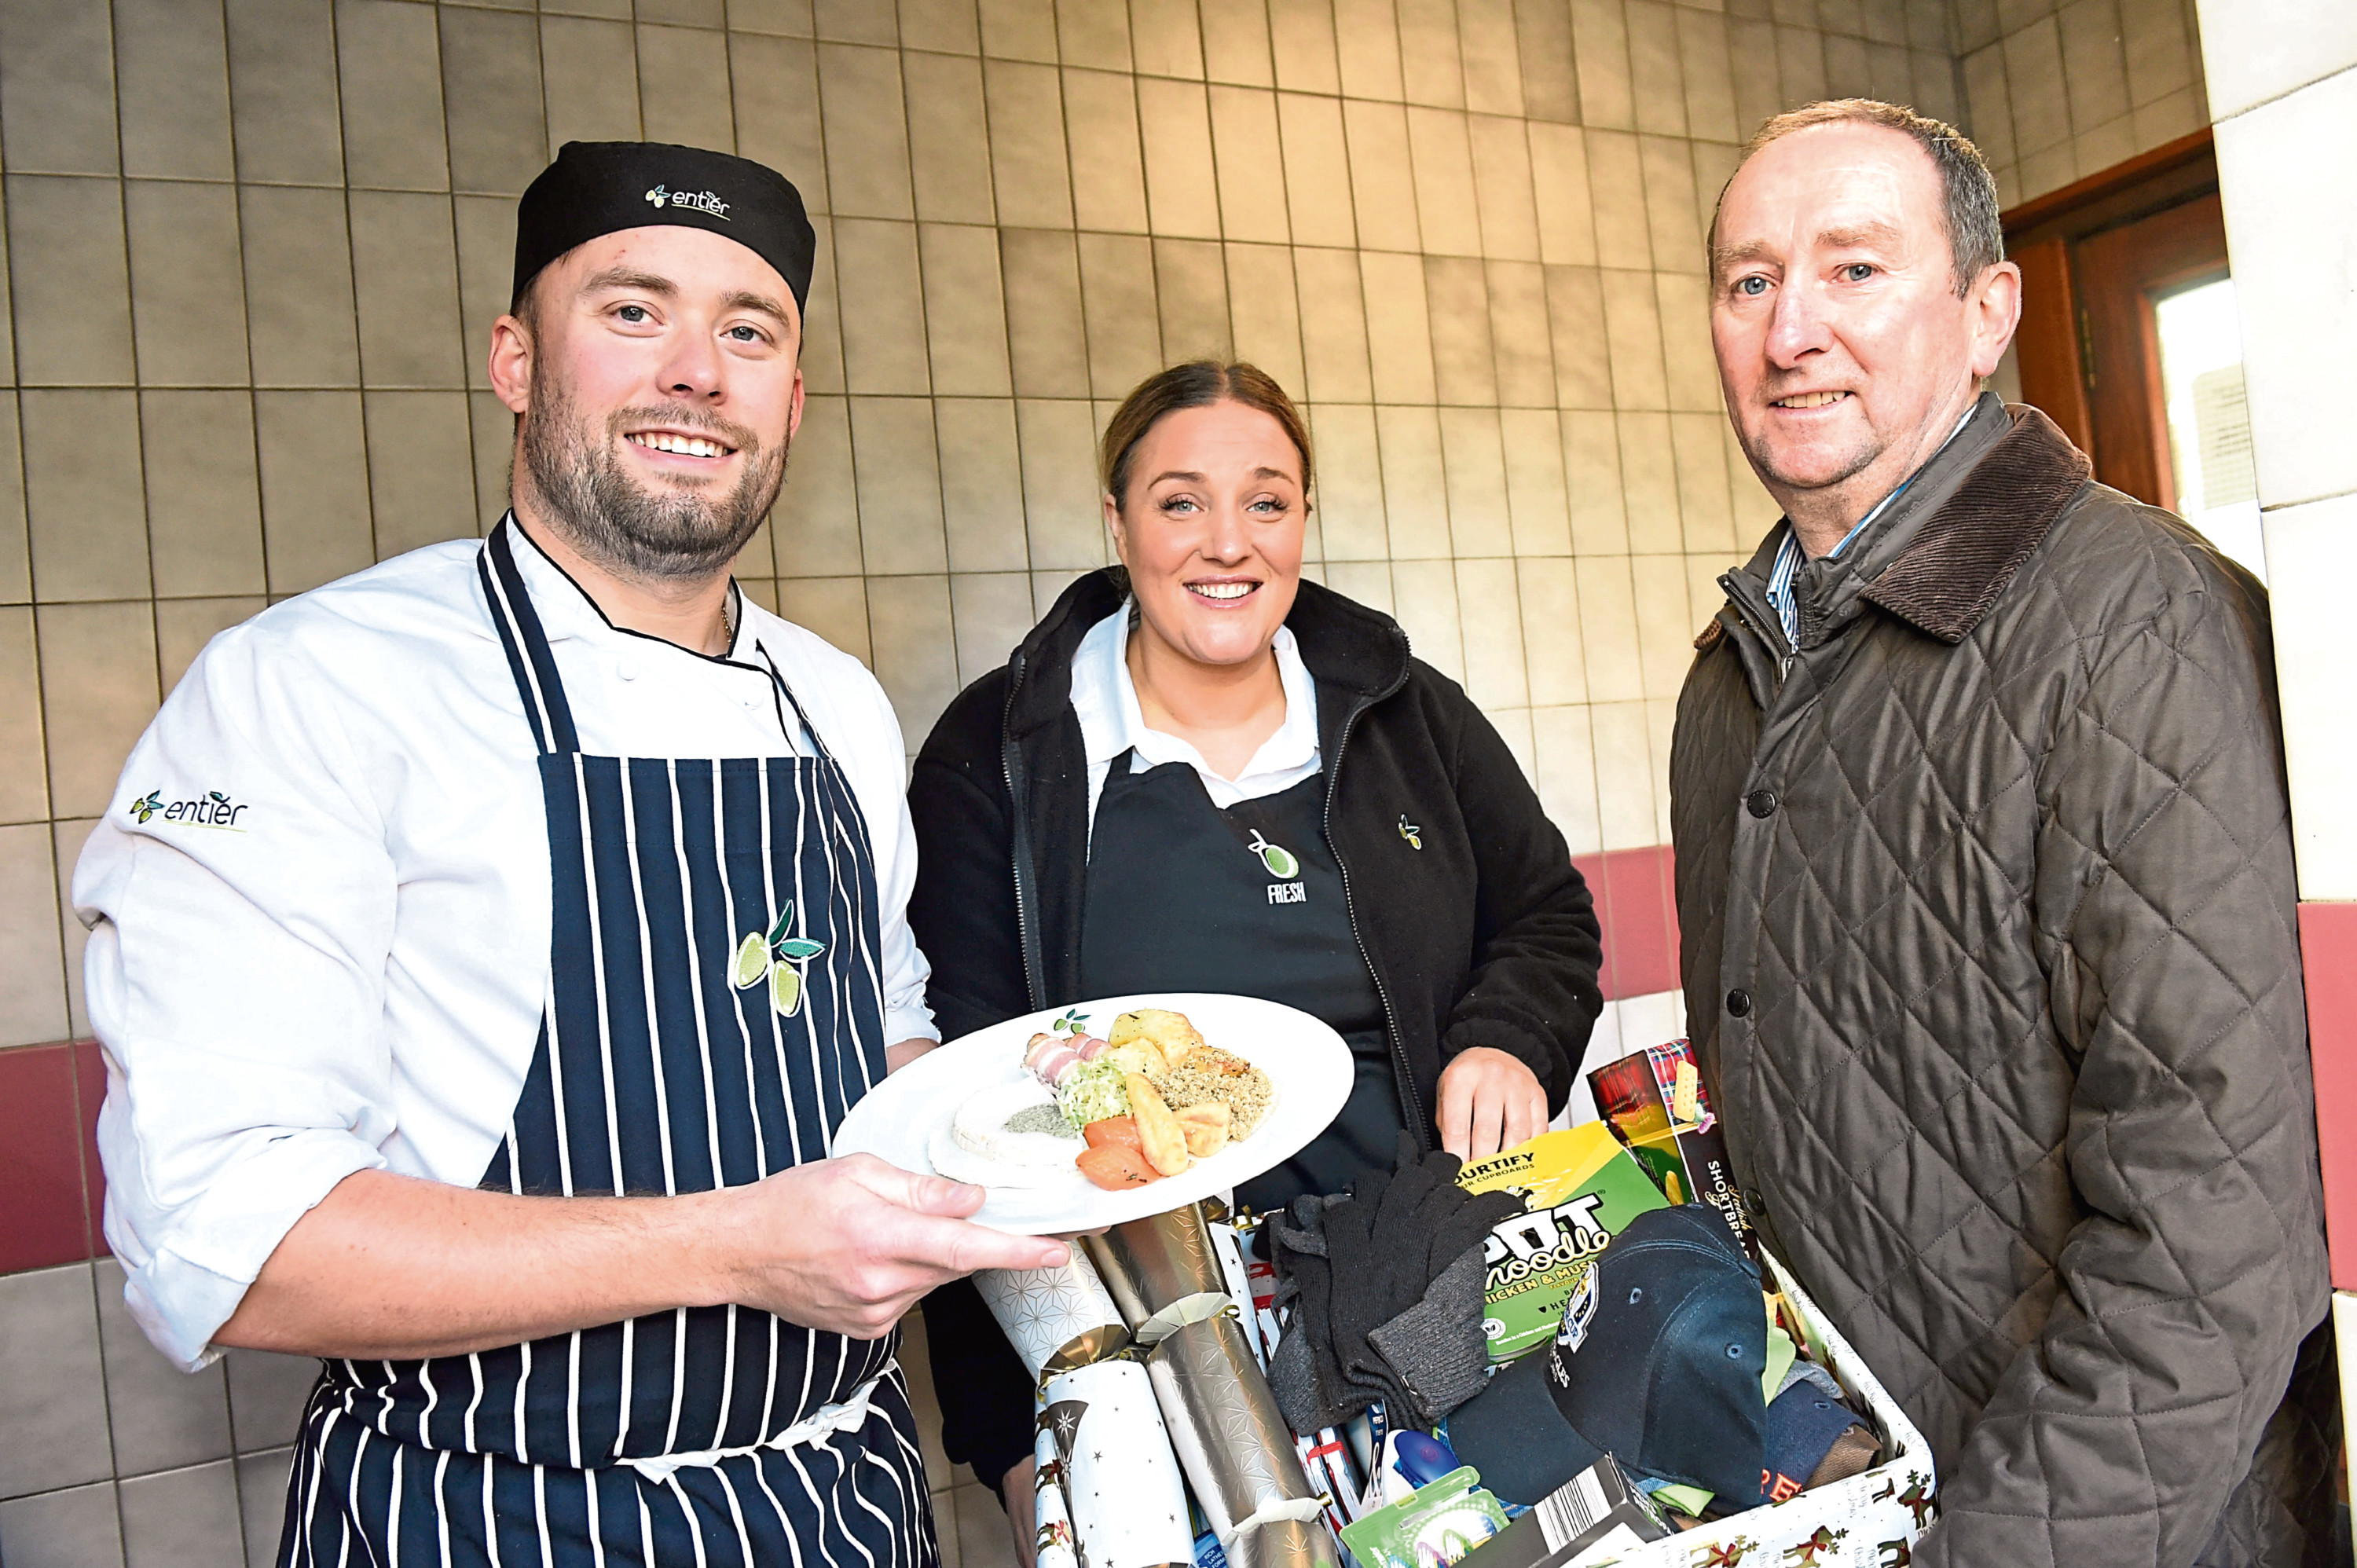 Chef Orry Shand, and Lyla Munro from catering firm Entier, which gave meals to those in need at Christmas, with Mike Burns, chief executive of Aberdeen Cyrenians.